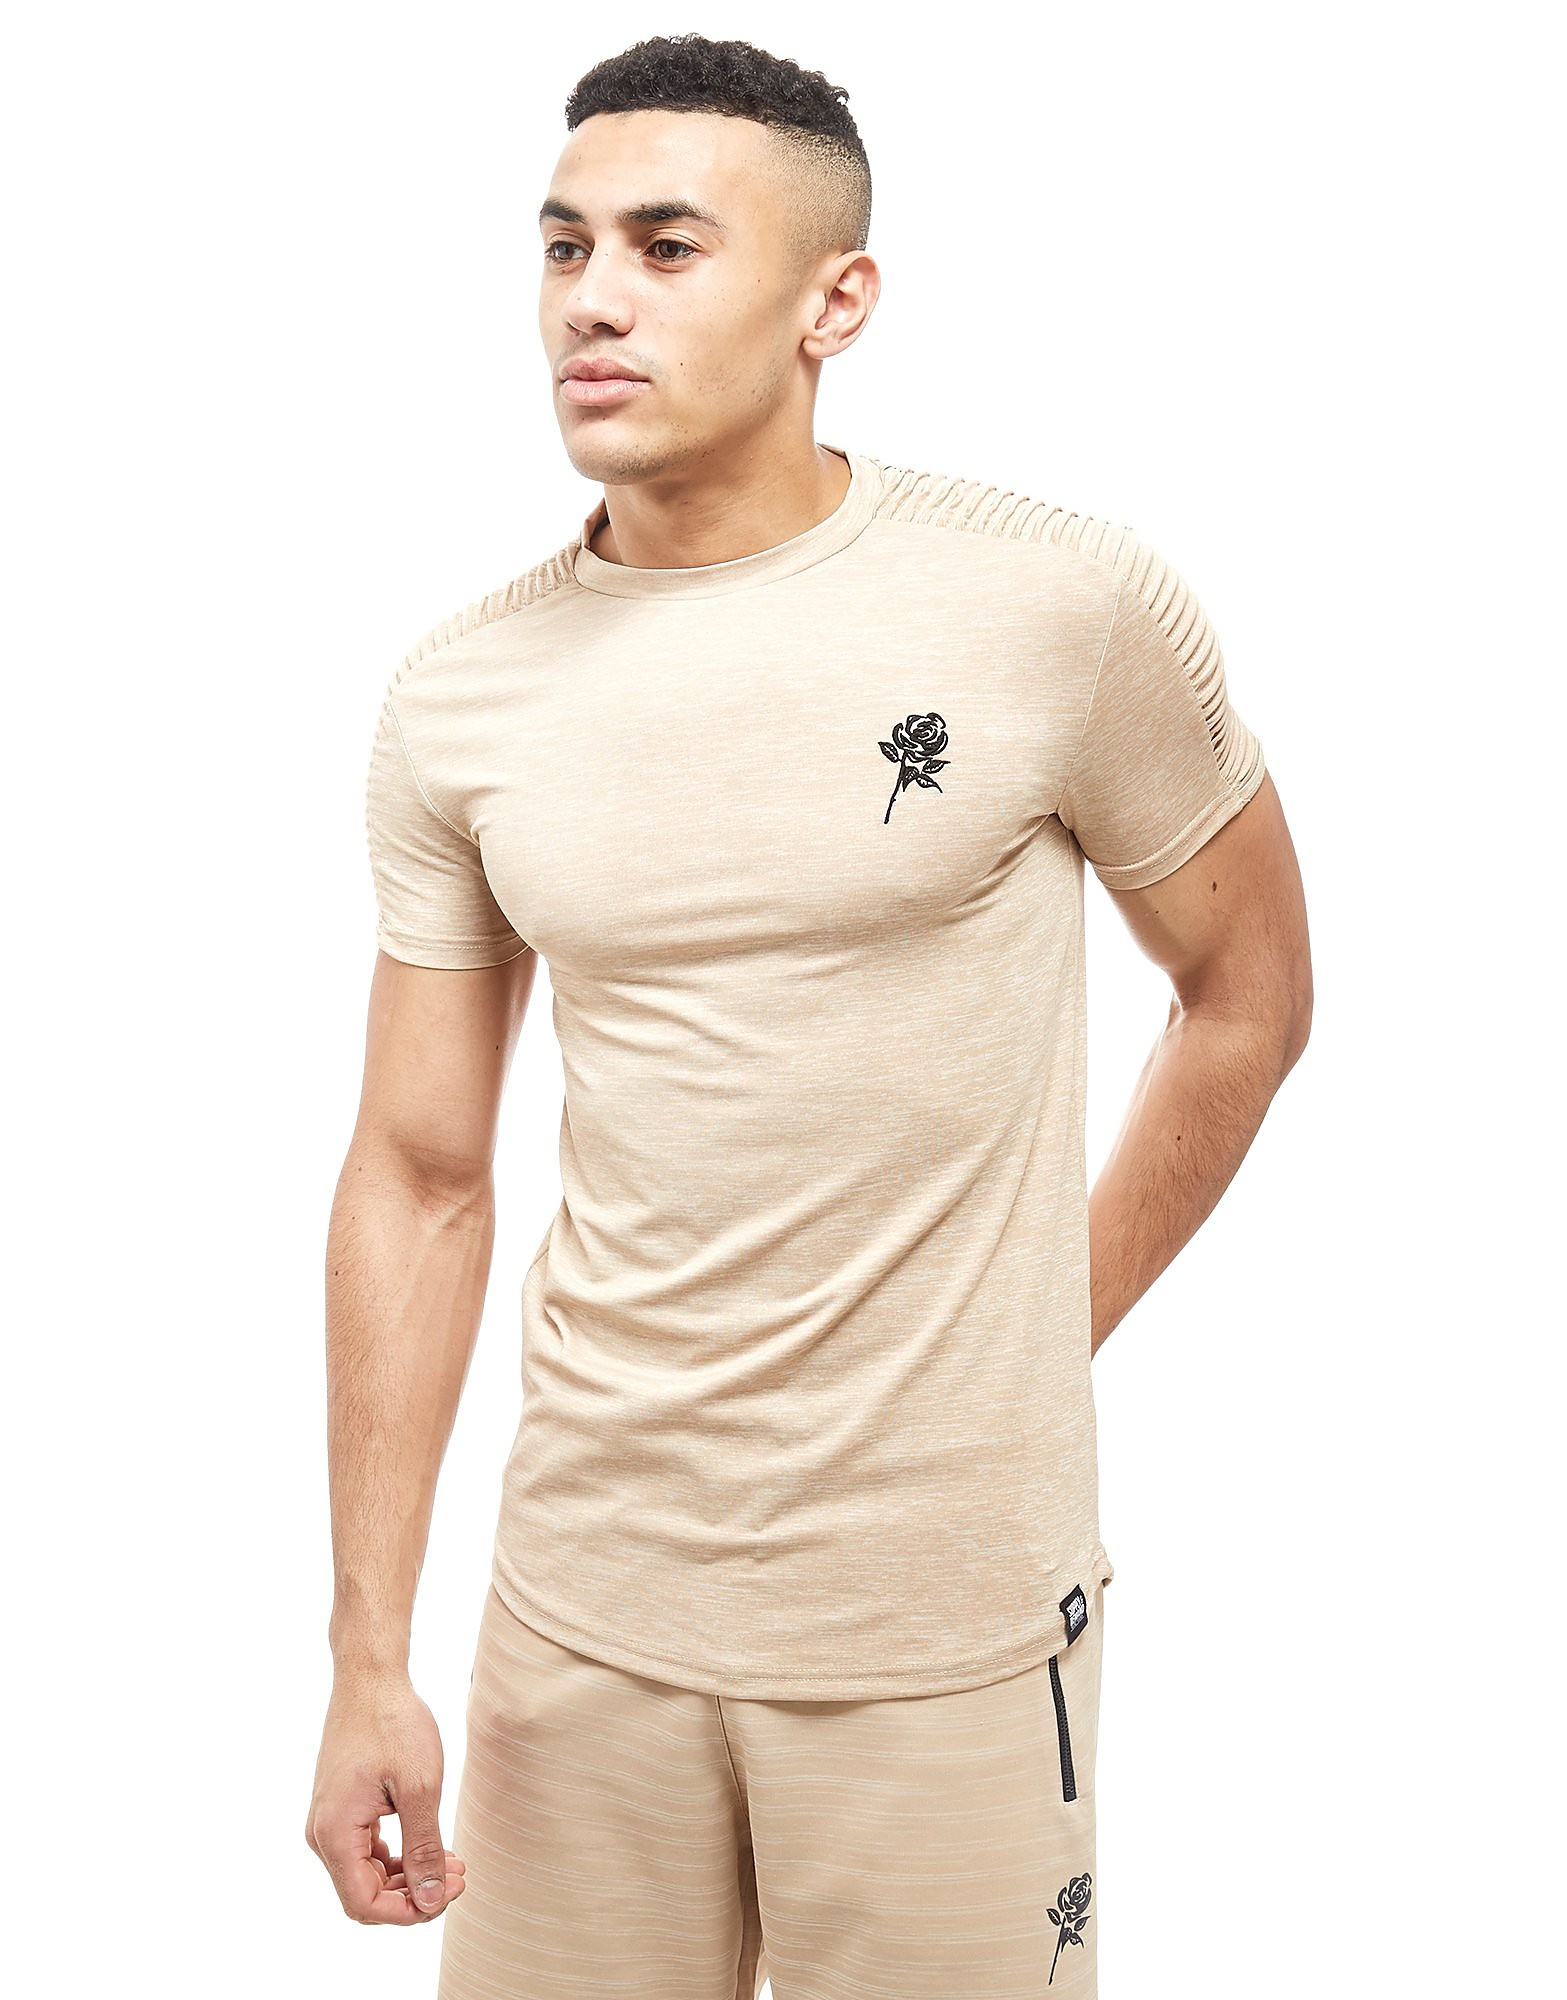 Supply & Demand Sanded T-Shirt - Only at JD, Stone